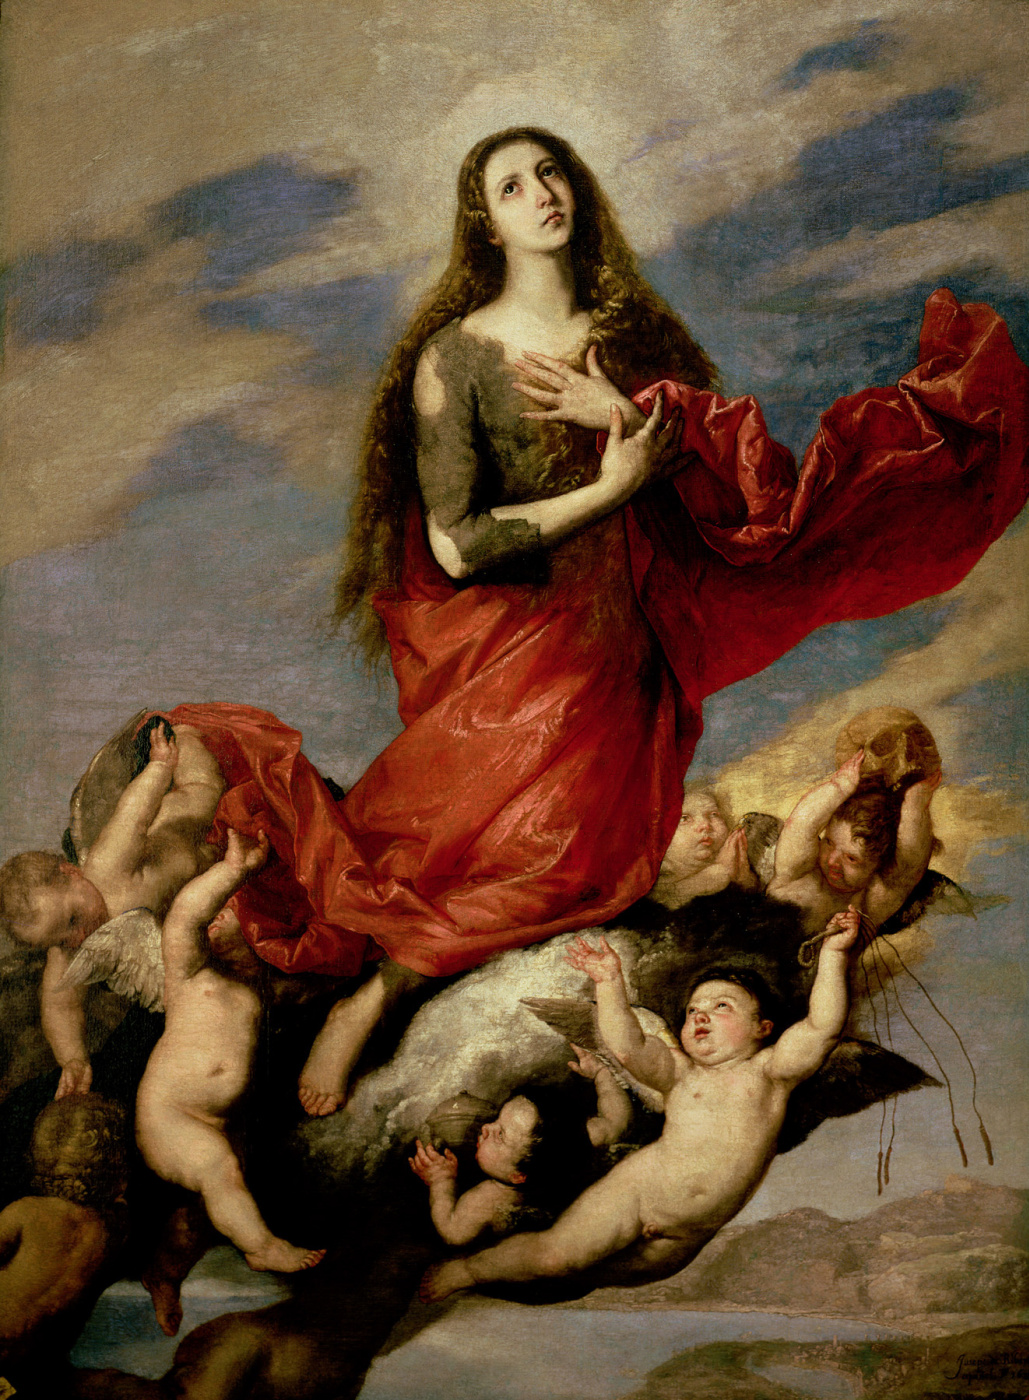 Jose de Ribera. The Transformation Of Mary Magdalene